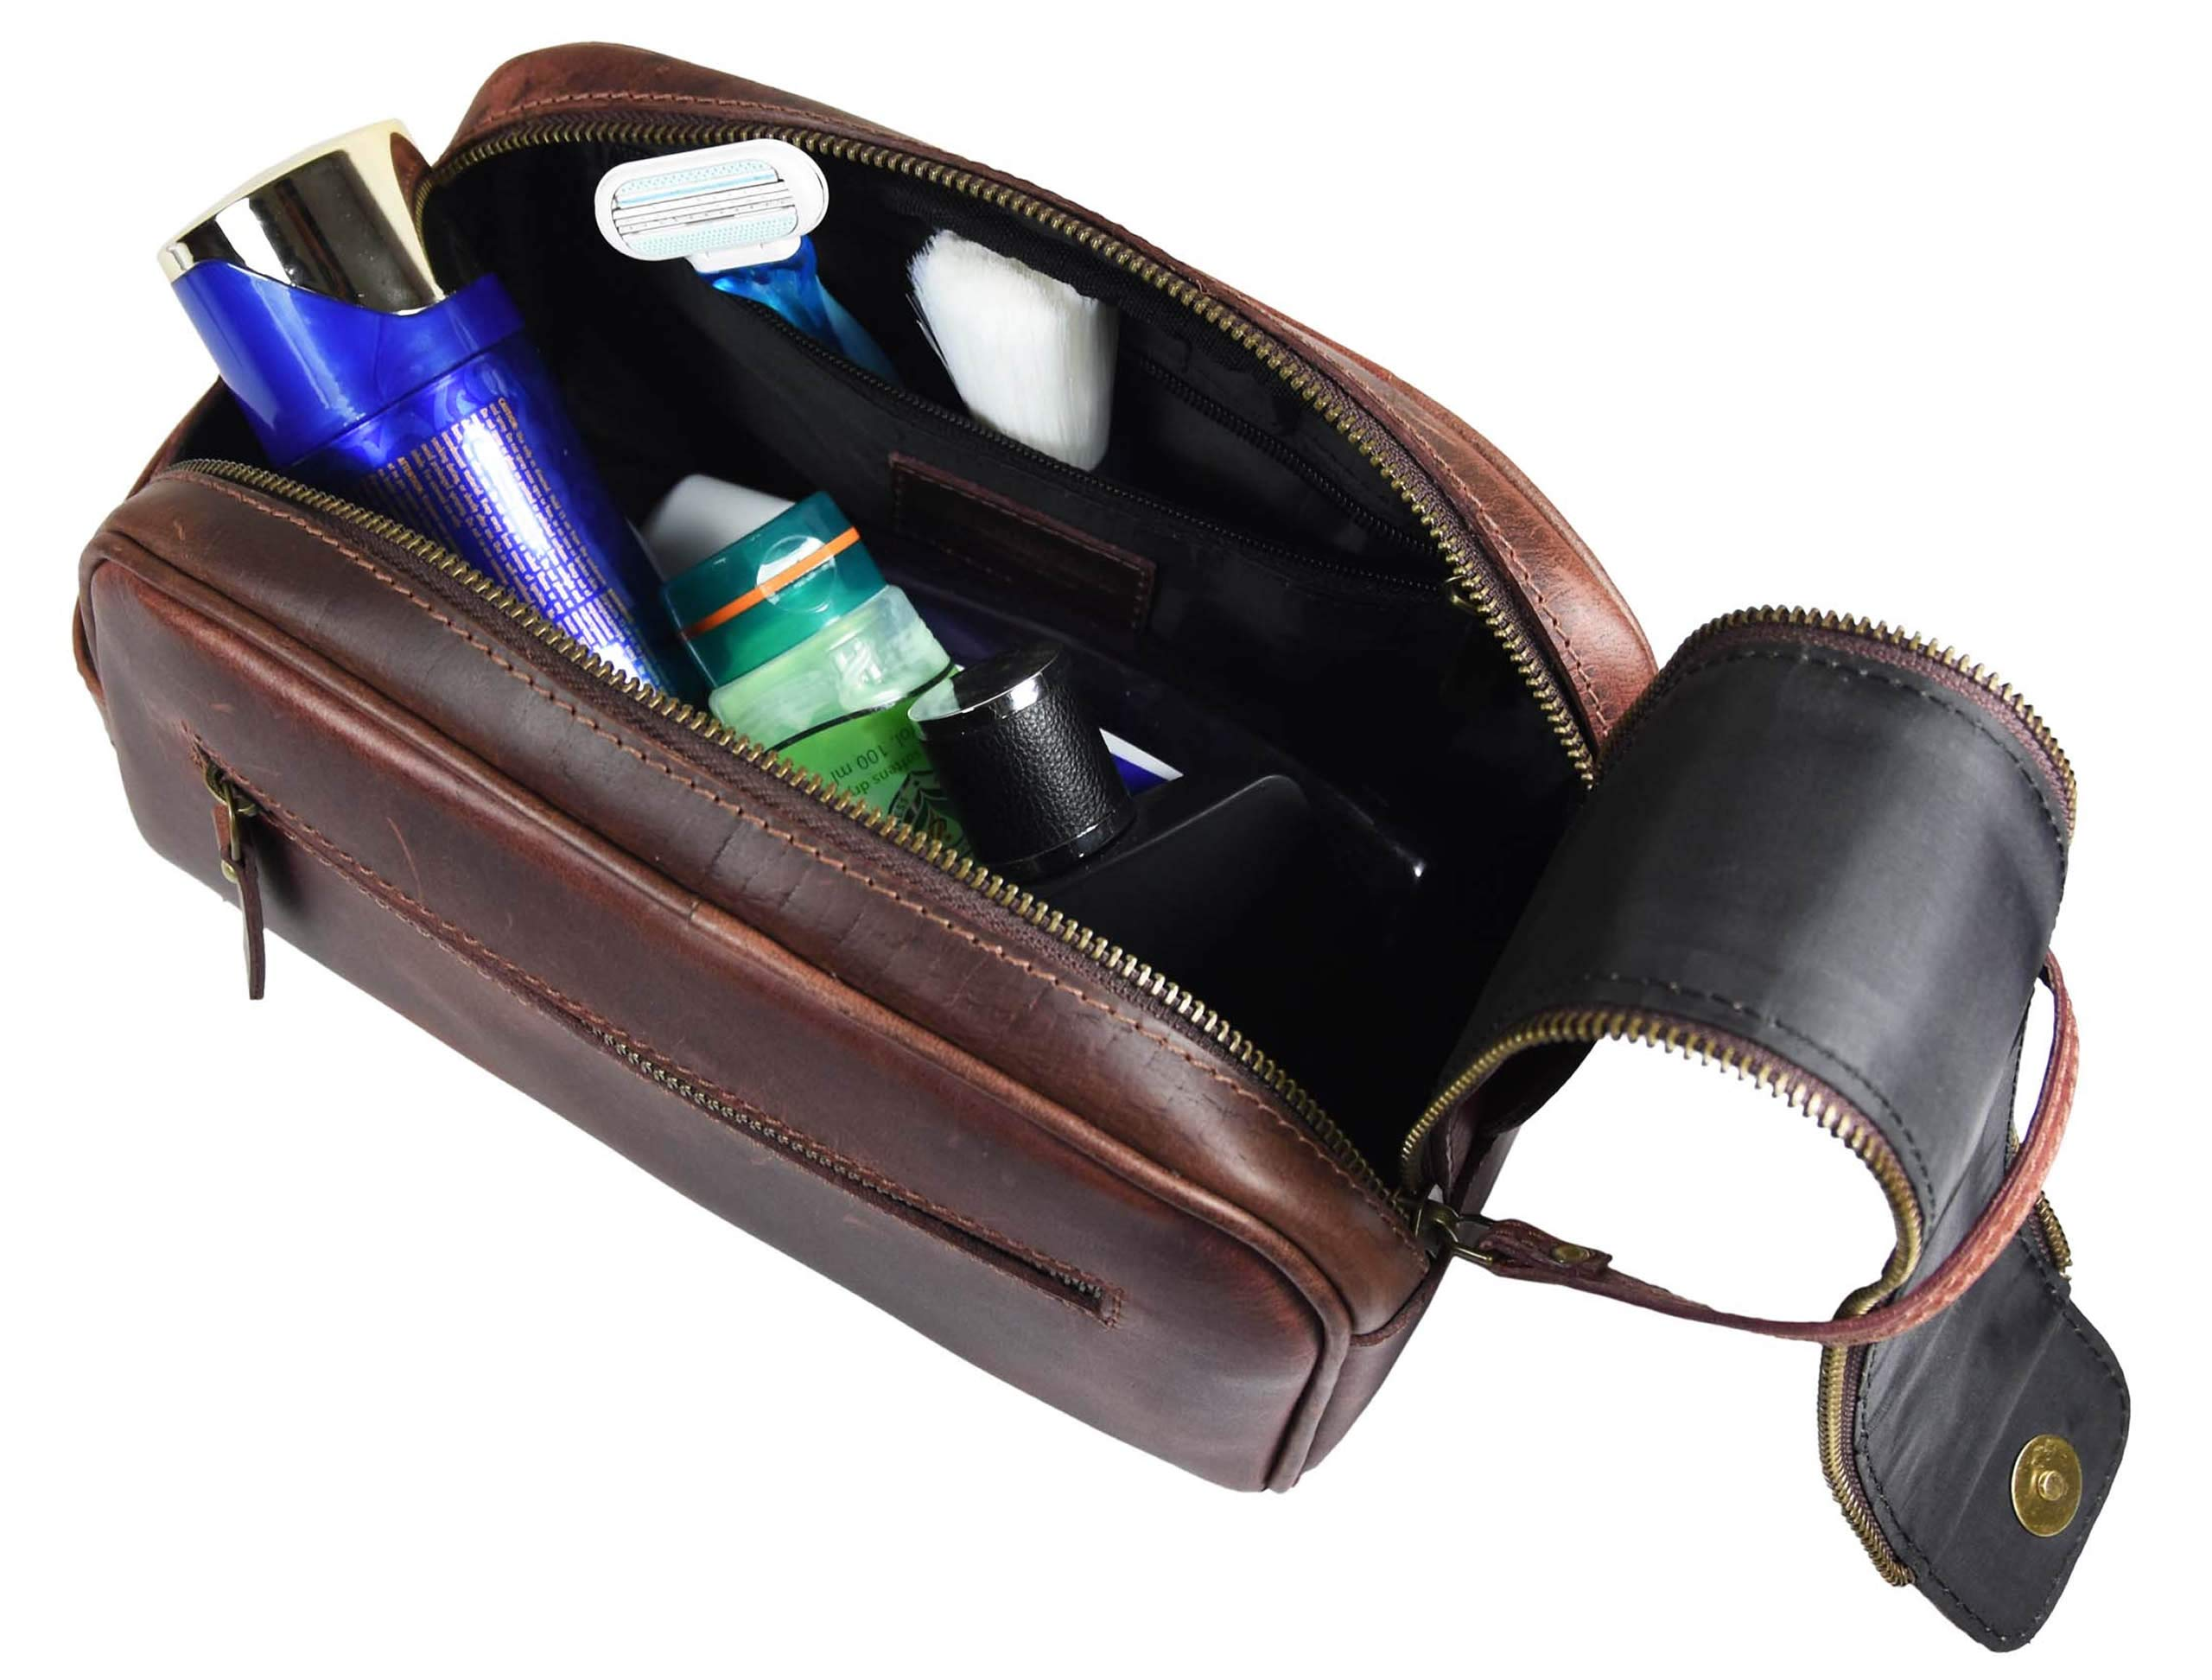 Leather Toiletry Bag for Men | Grooming Travel Kit | By Aaron Leather (Walnut - Dual Zipper) by AARON LEATHER GOODS VENDIMIA ESTILO (Image #2)